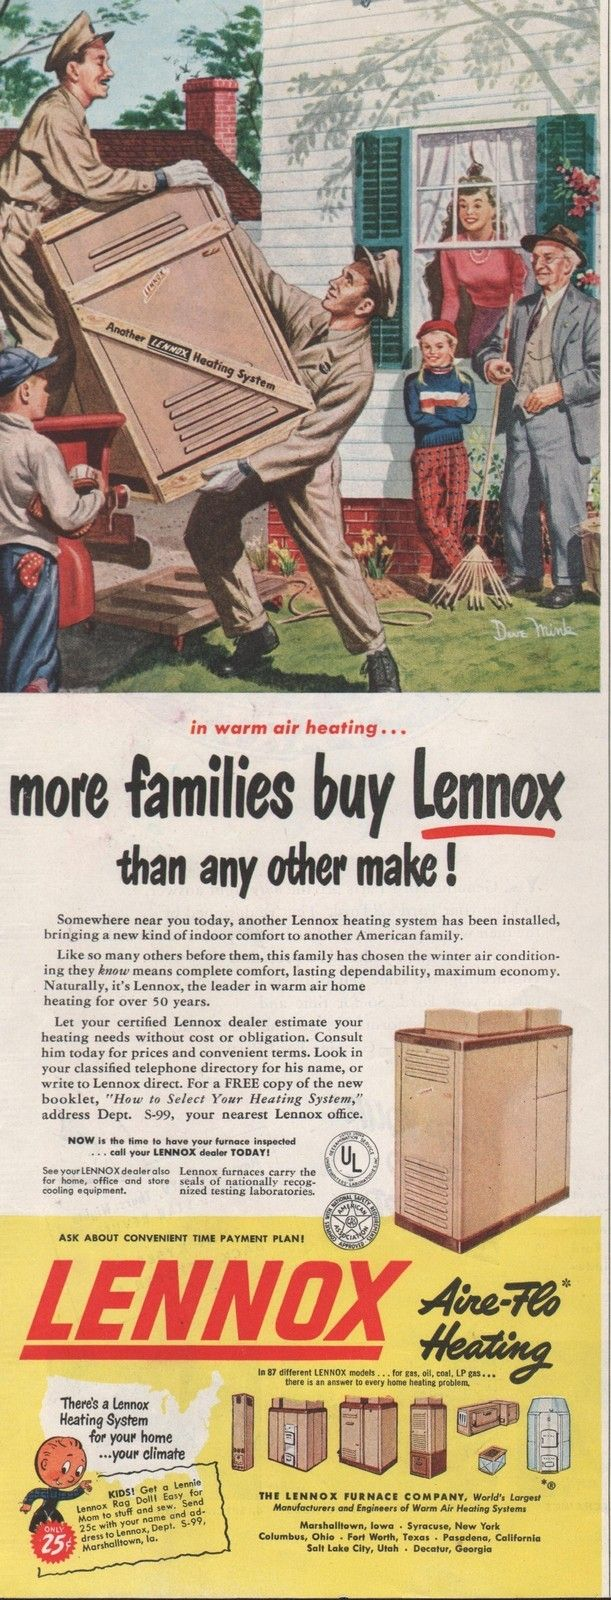 1950 Vintage Lennox Aire Flo Heating More Families Buy Print Ad